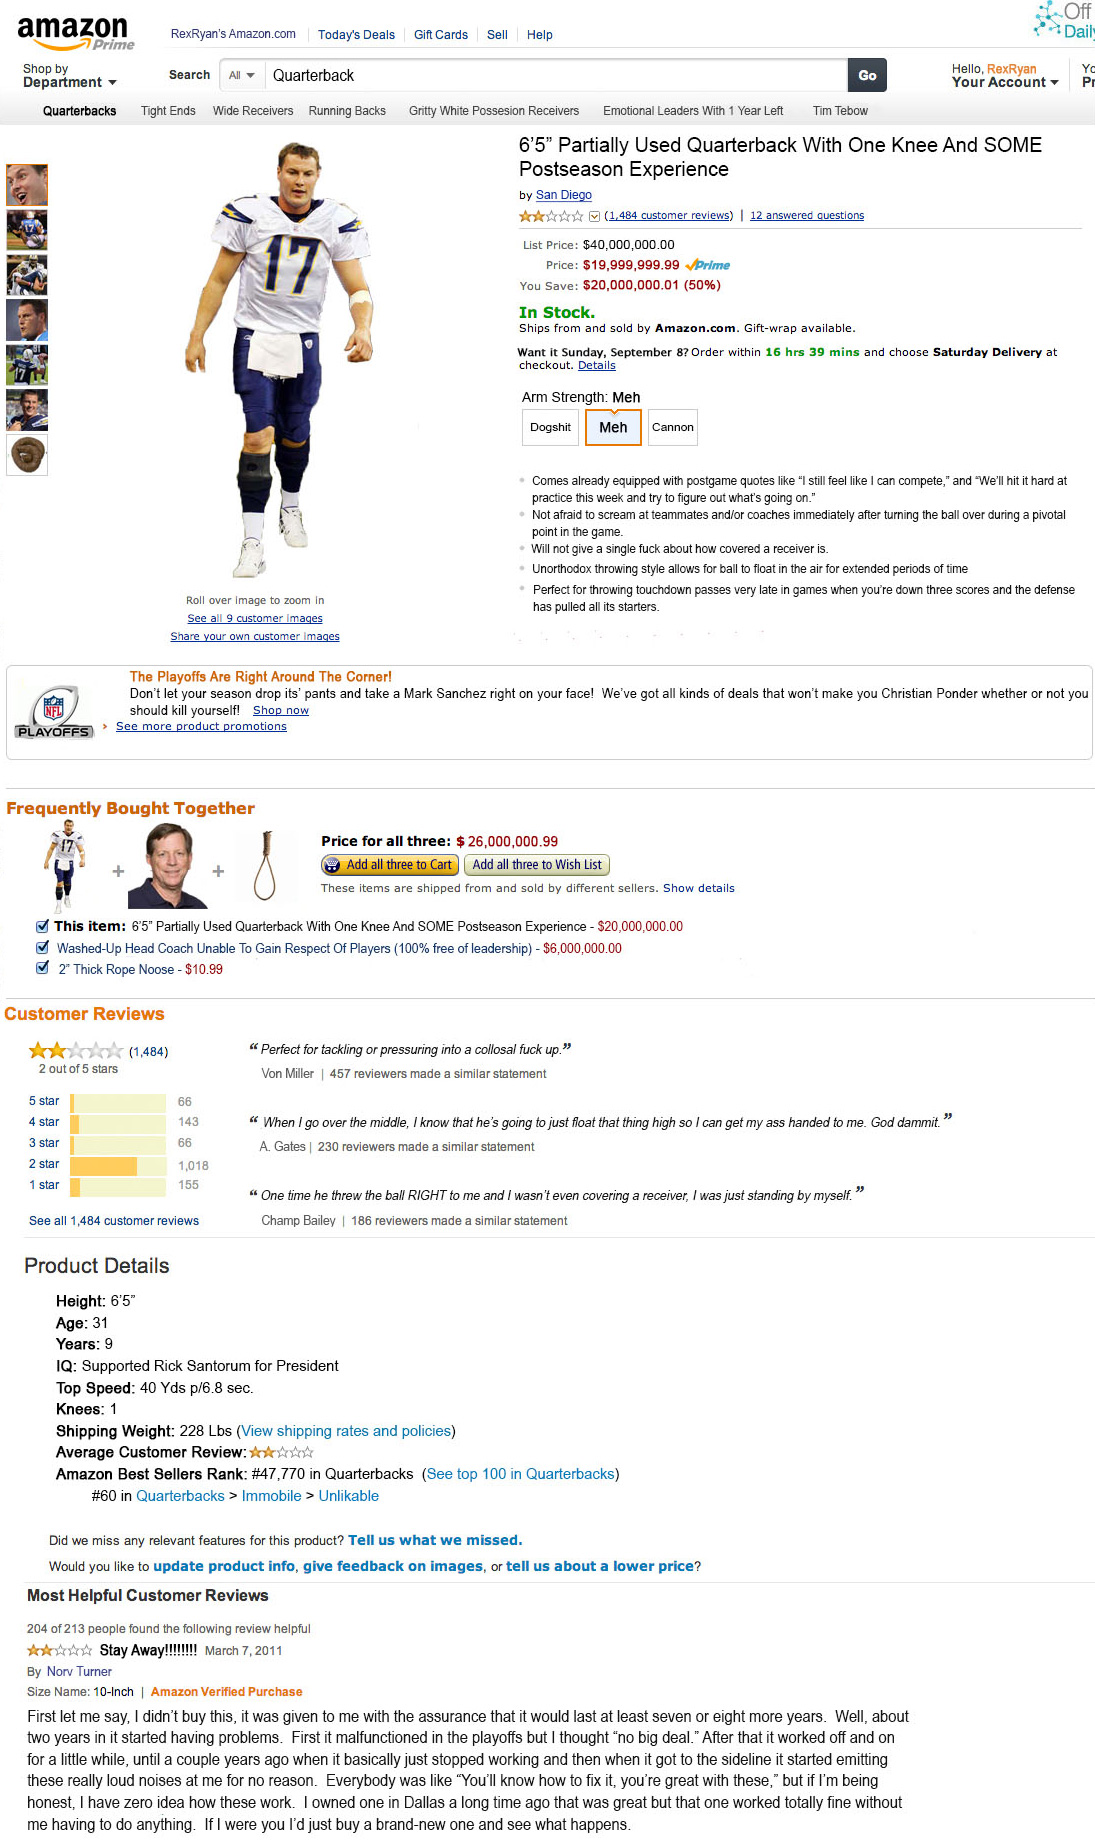 Philip Rivers on Amazon.com